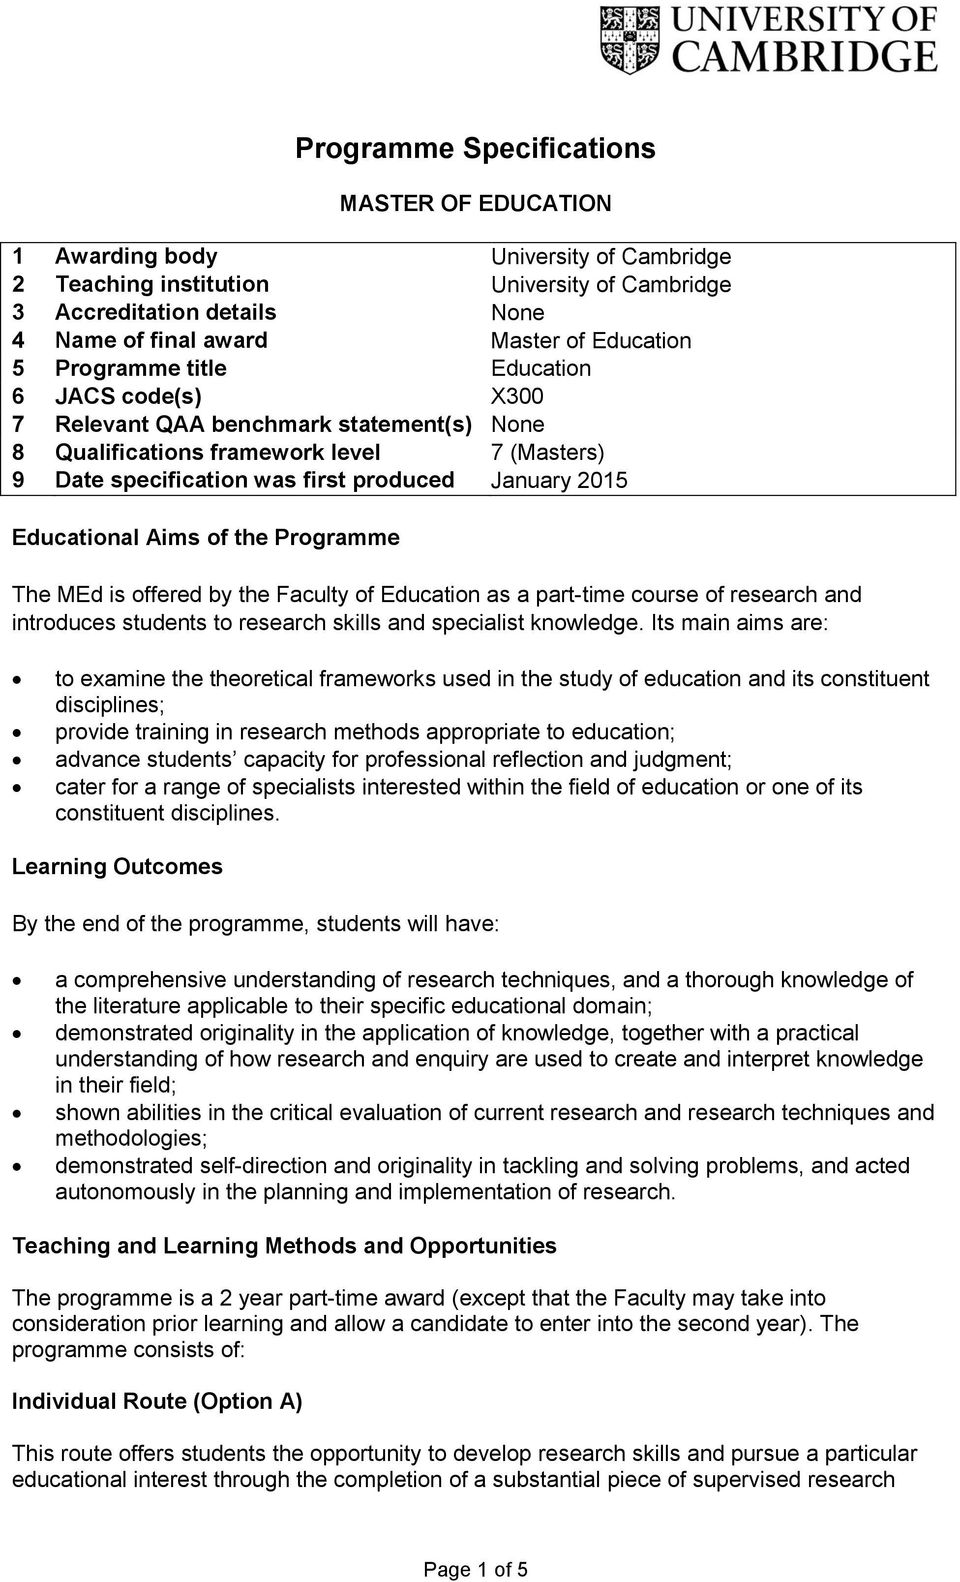 Educational Aims of the Programme The MEd is offered by the Faculty of Education as a part-time course of research and introduces students to research skills and specialist knowledge.